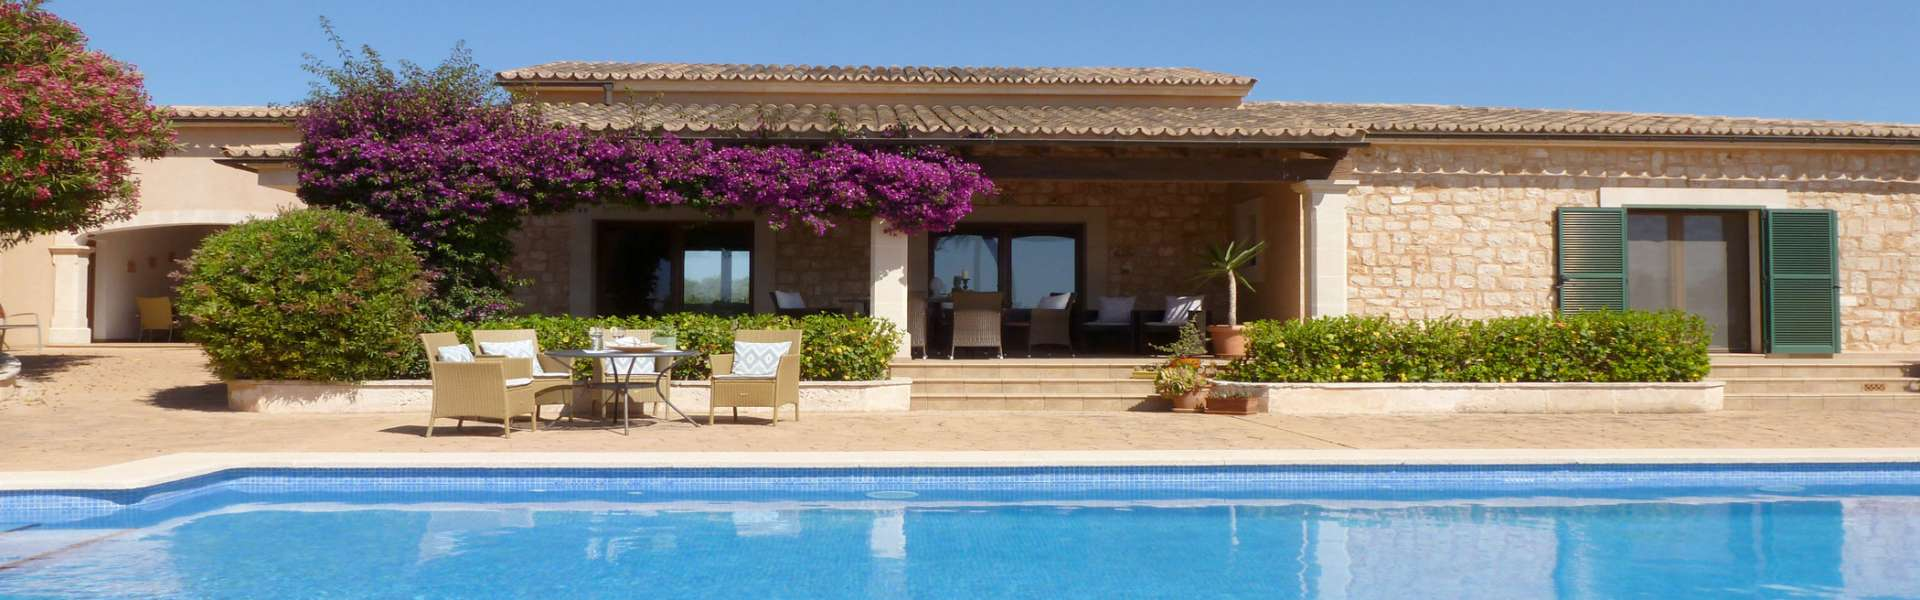 Santanyí - Charming country house in quiet location